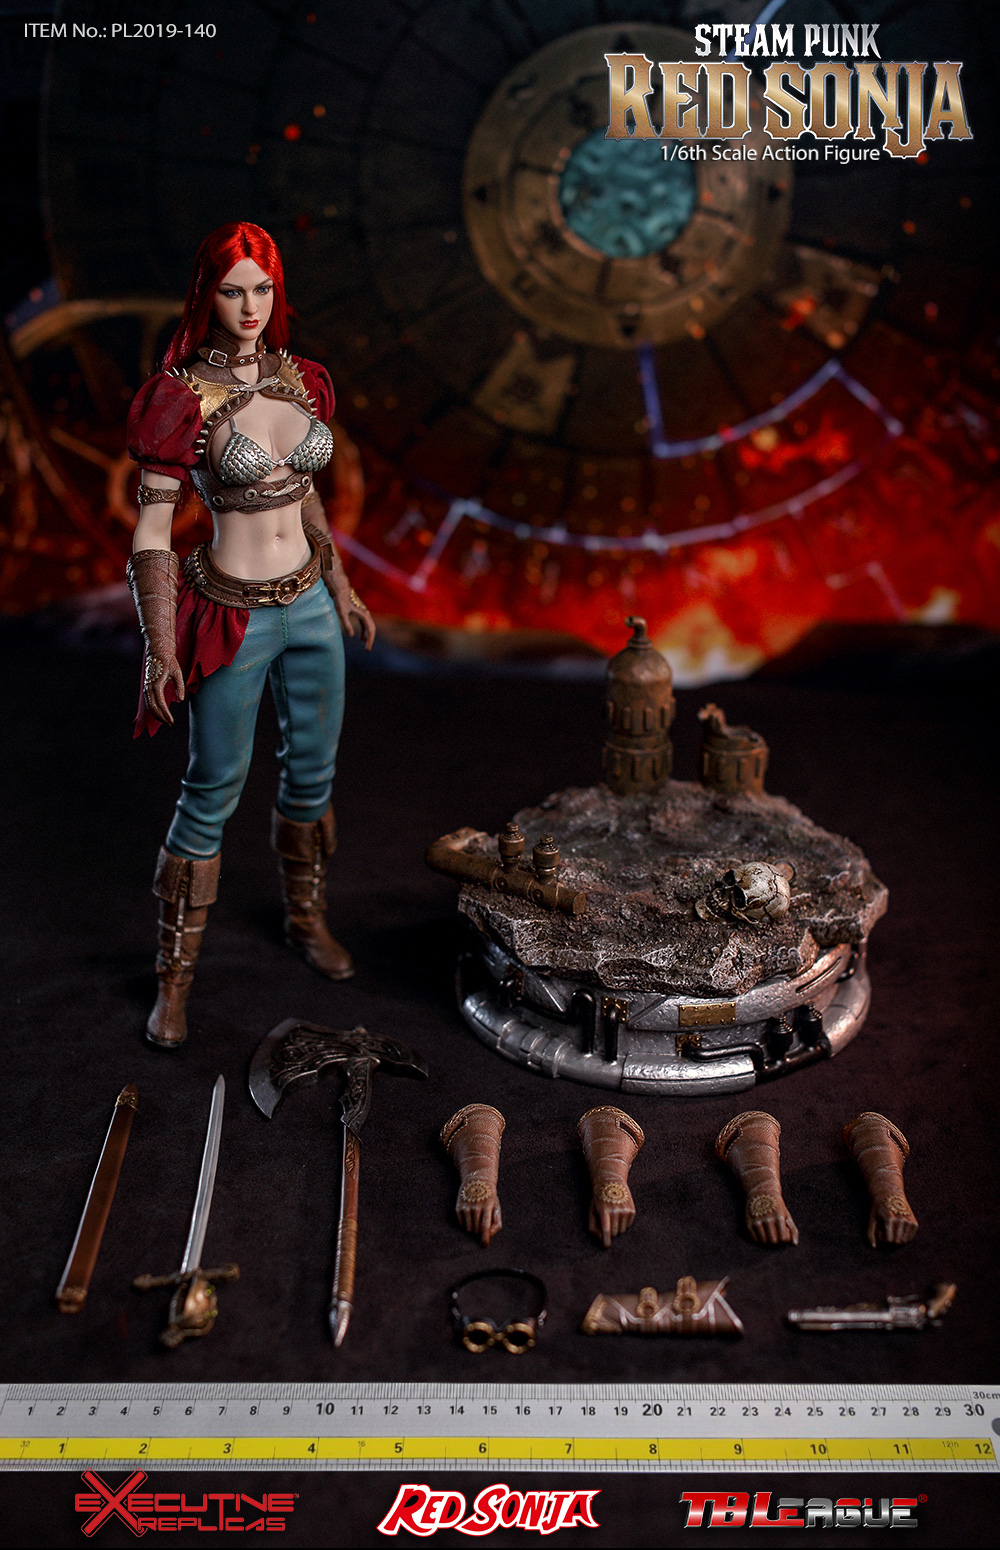 steampunk - NEW PRODUCT: TBLeague: 1/6 Steam Punk - Red Sonja / Queen Excalibur [punk version] PL2019-140-A/B 20193010